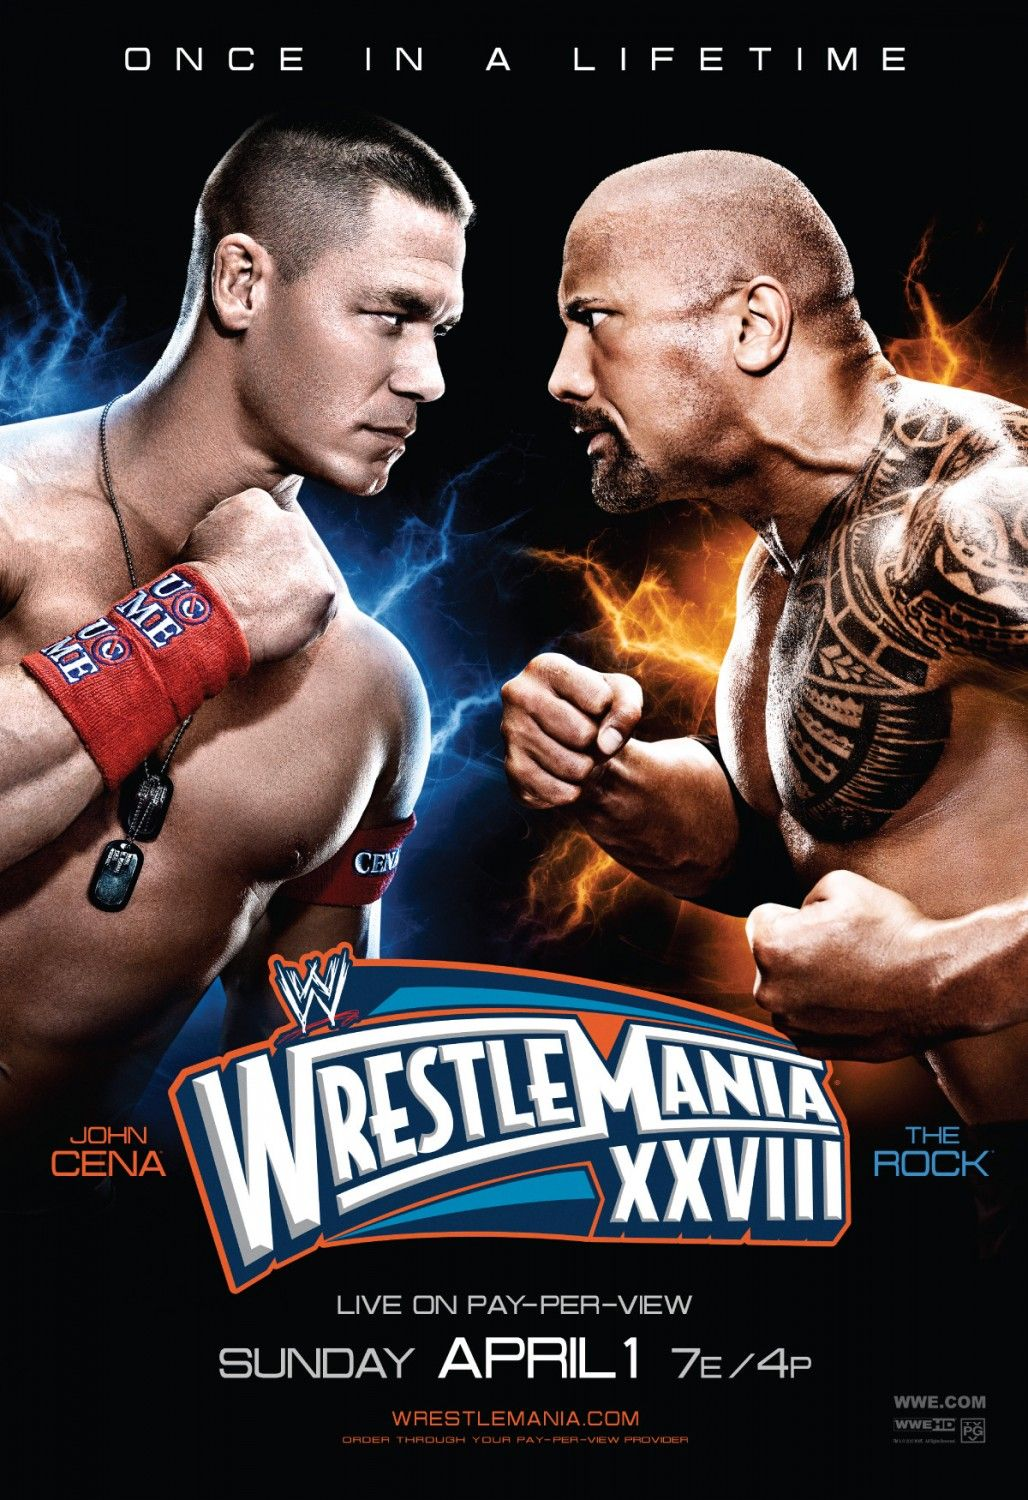 Wrestlemania 28 John Cena Vs The Rock Fight Posters Fan Made Or